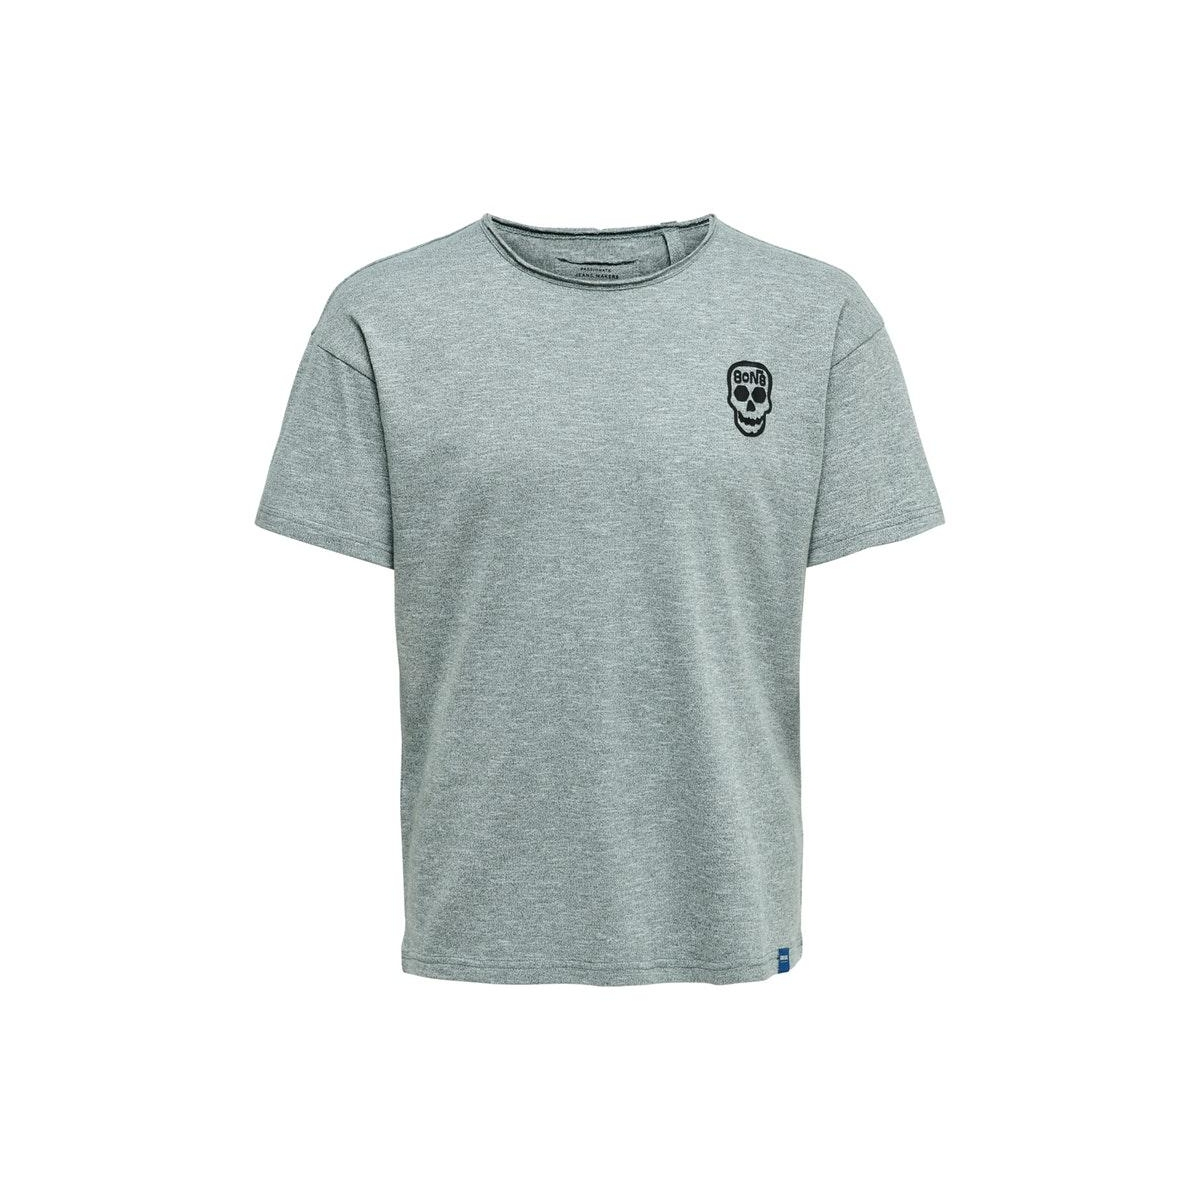 onscali life drop tee nf 6216 22016216 only & sons t-shirt balsam green